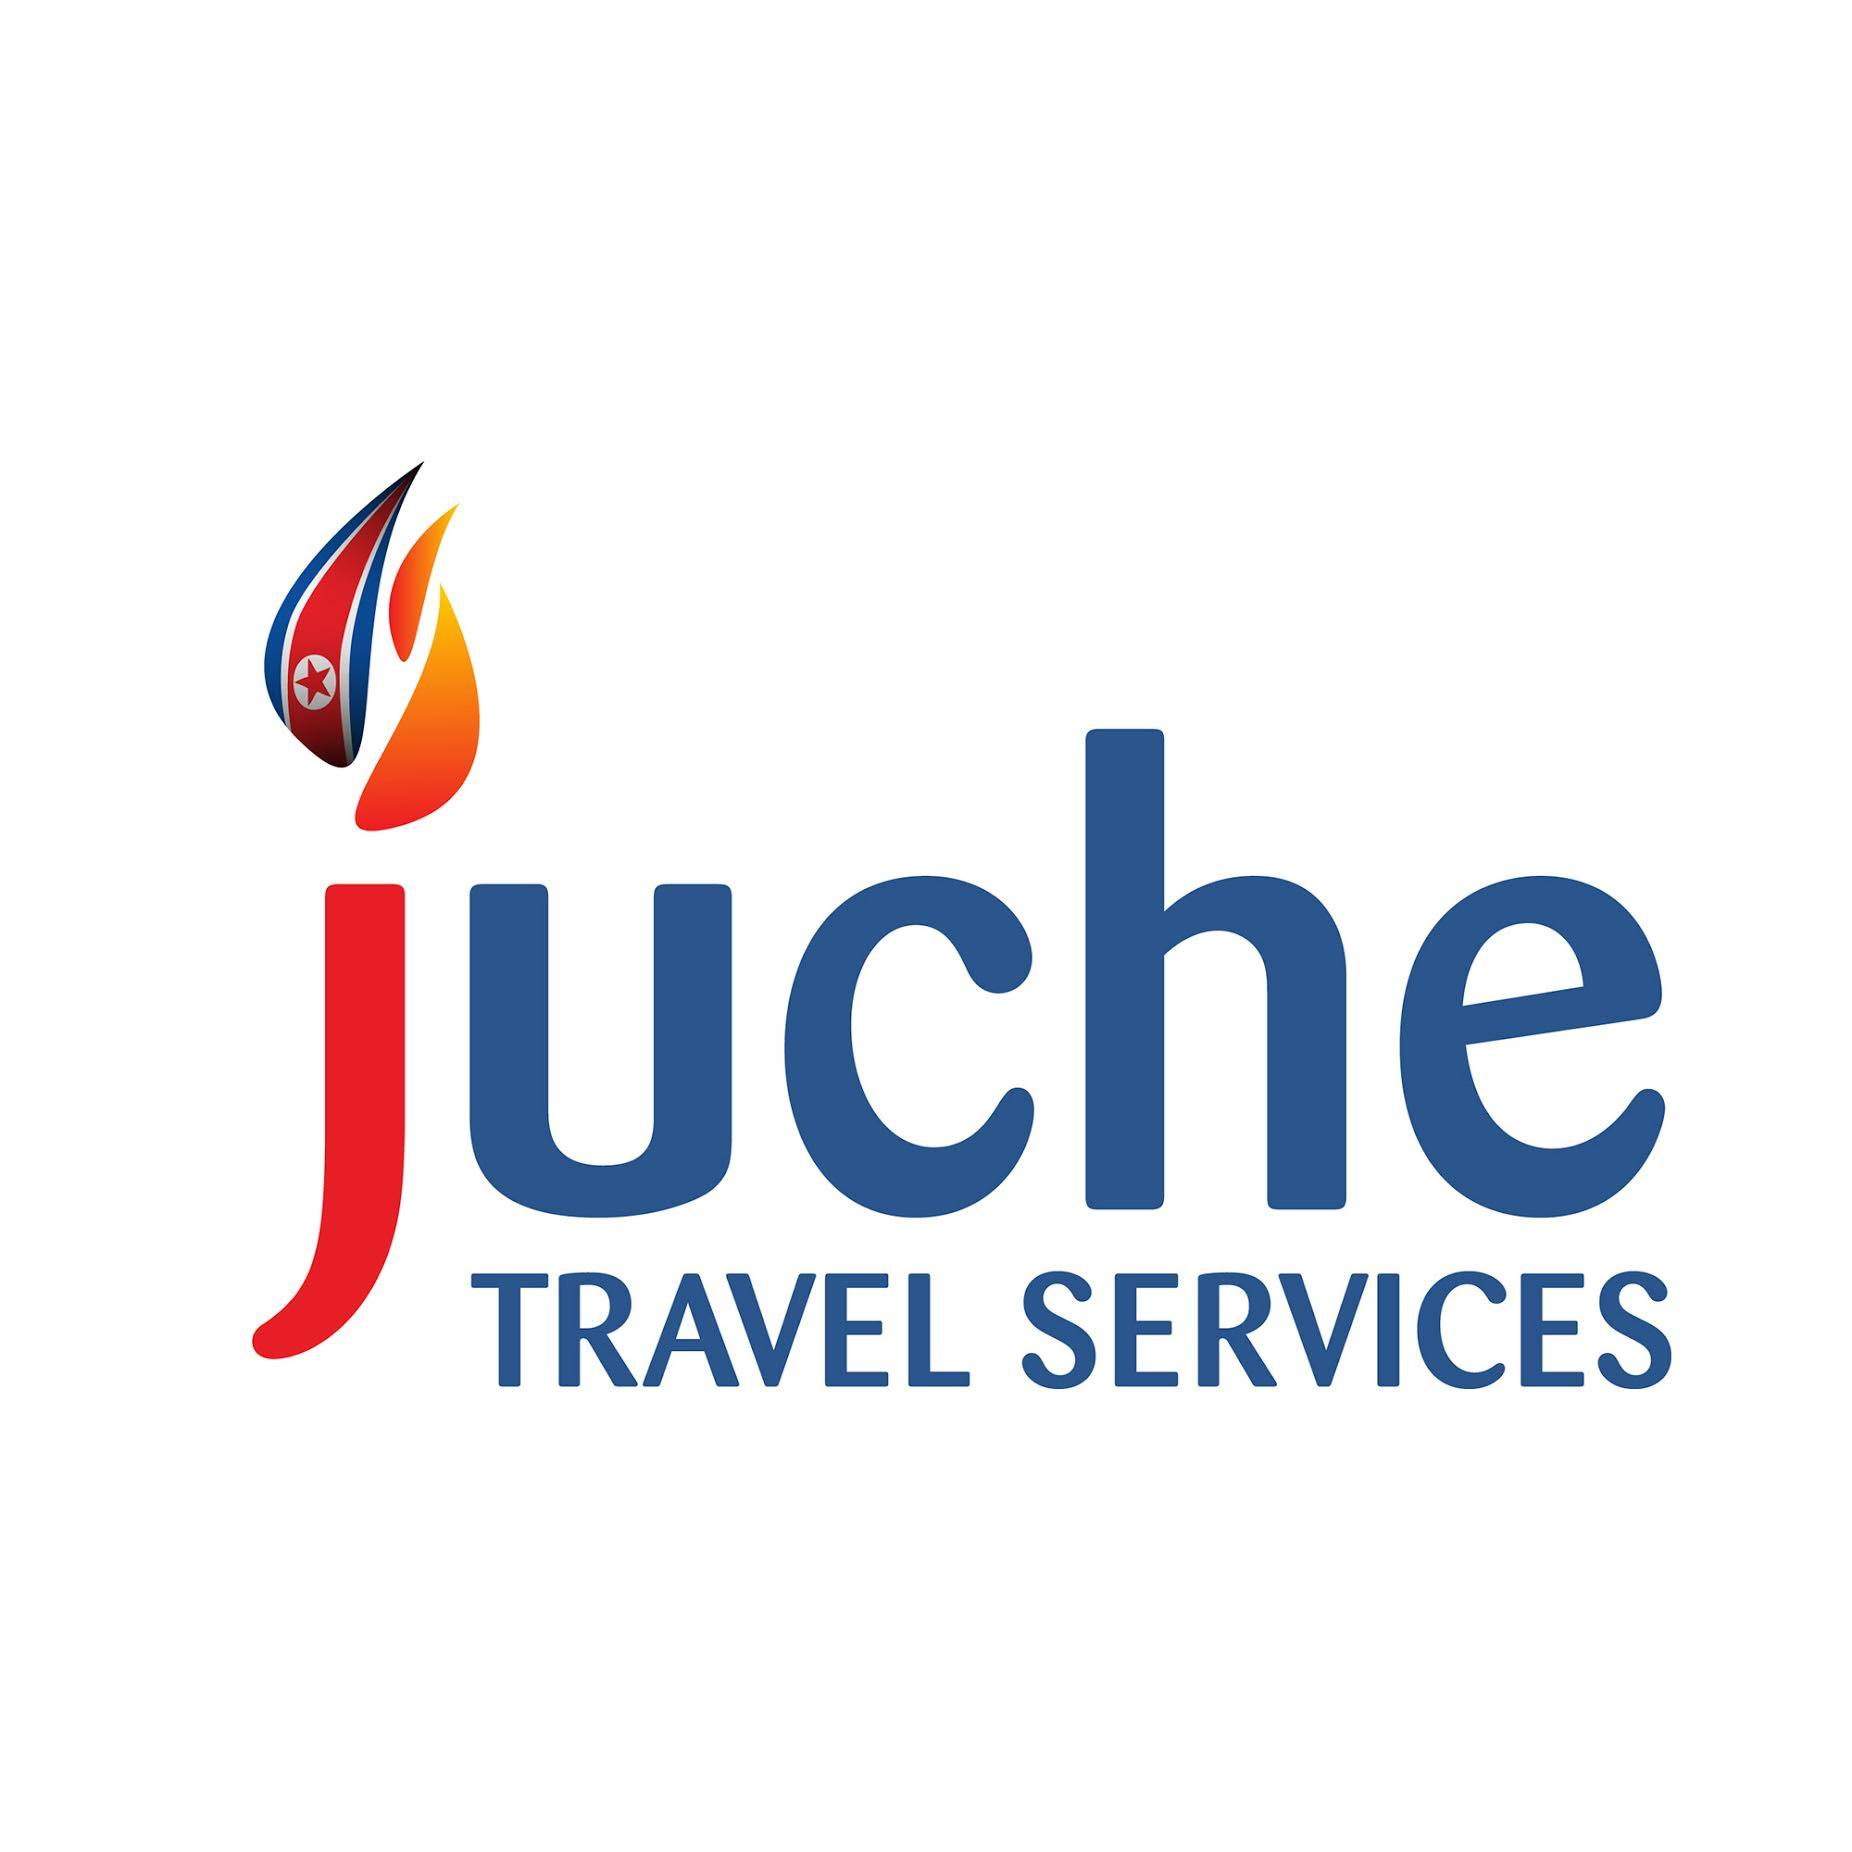 UK Foreign Office Travel Advice - North Korea - Juche Travel Services